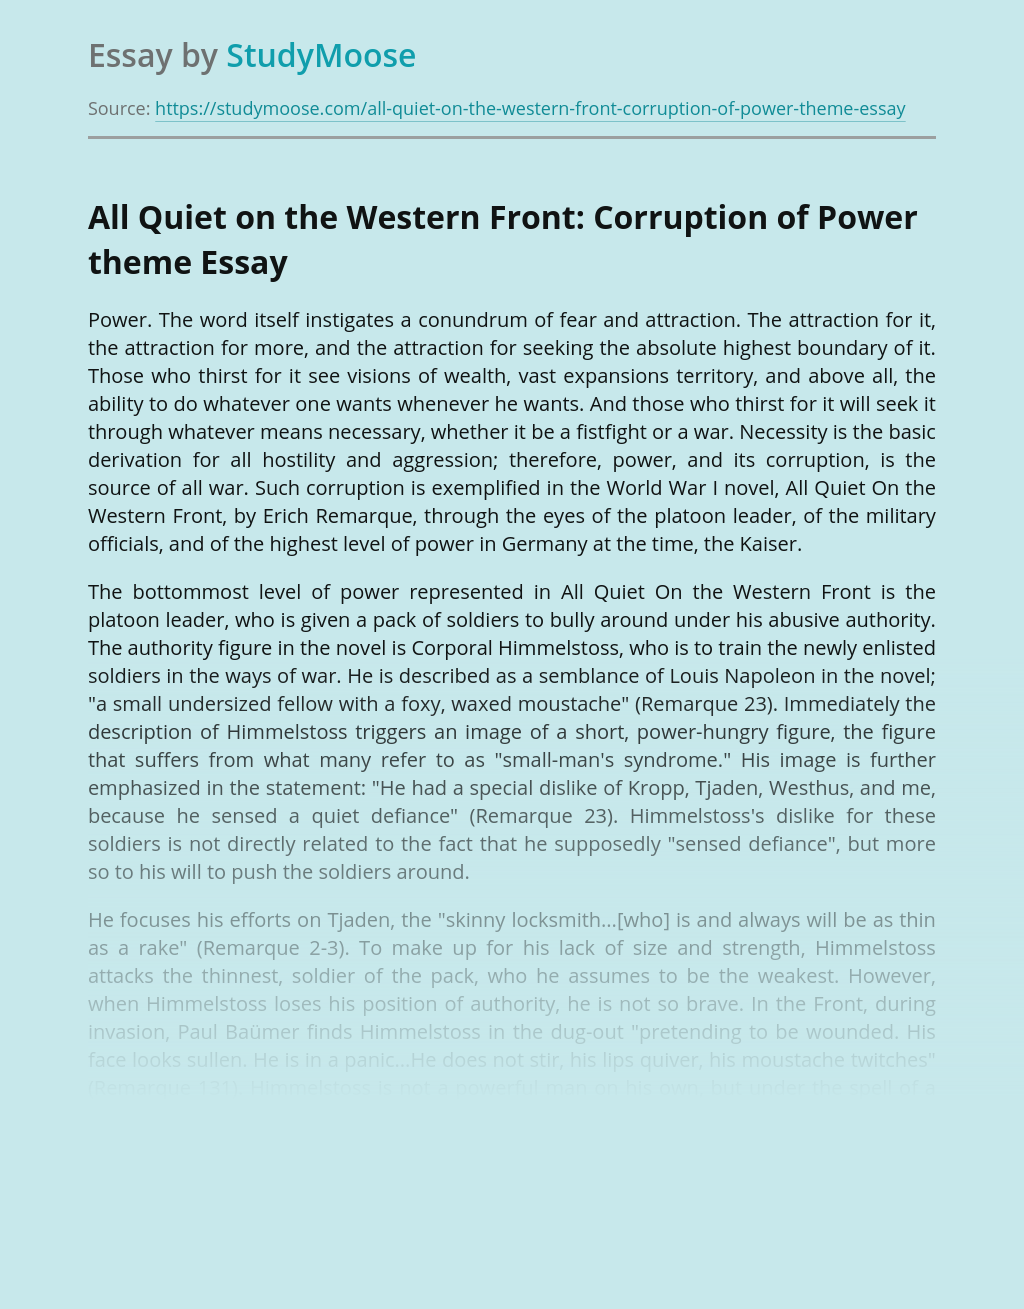 All Quiet on the Western Front: Corruption of Power theme